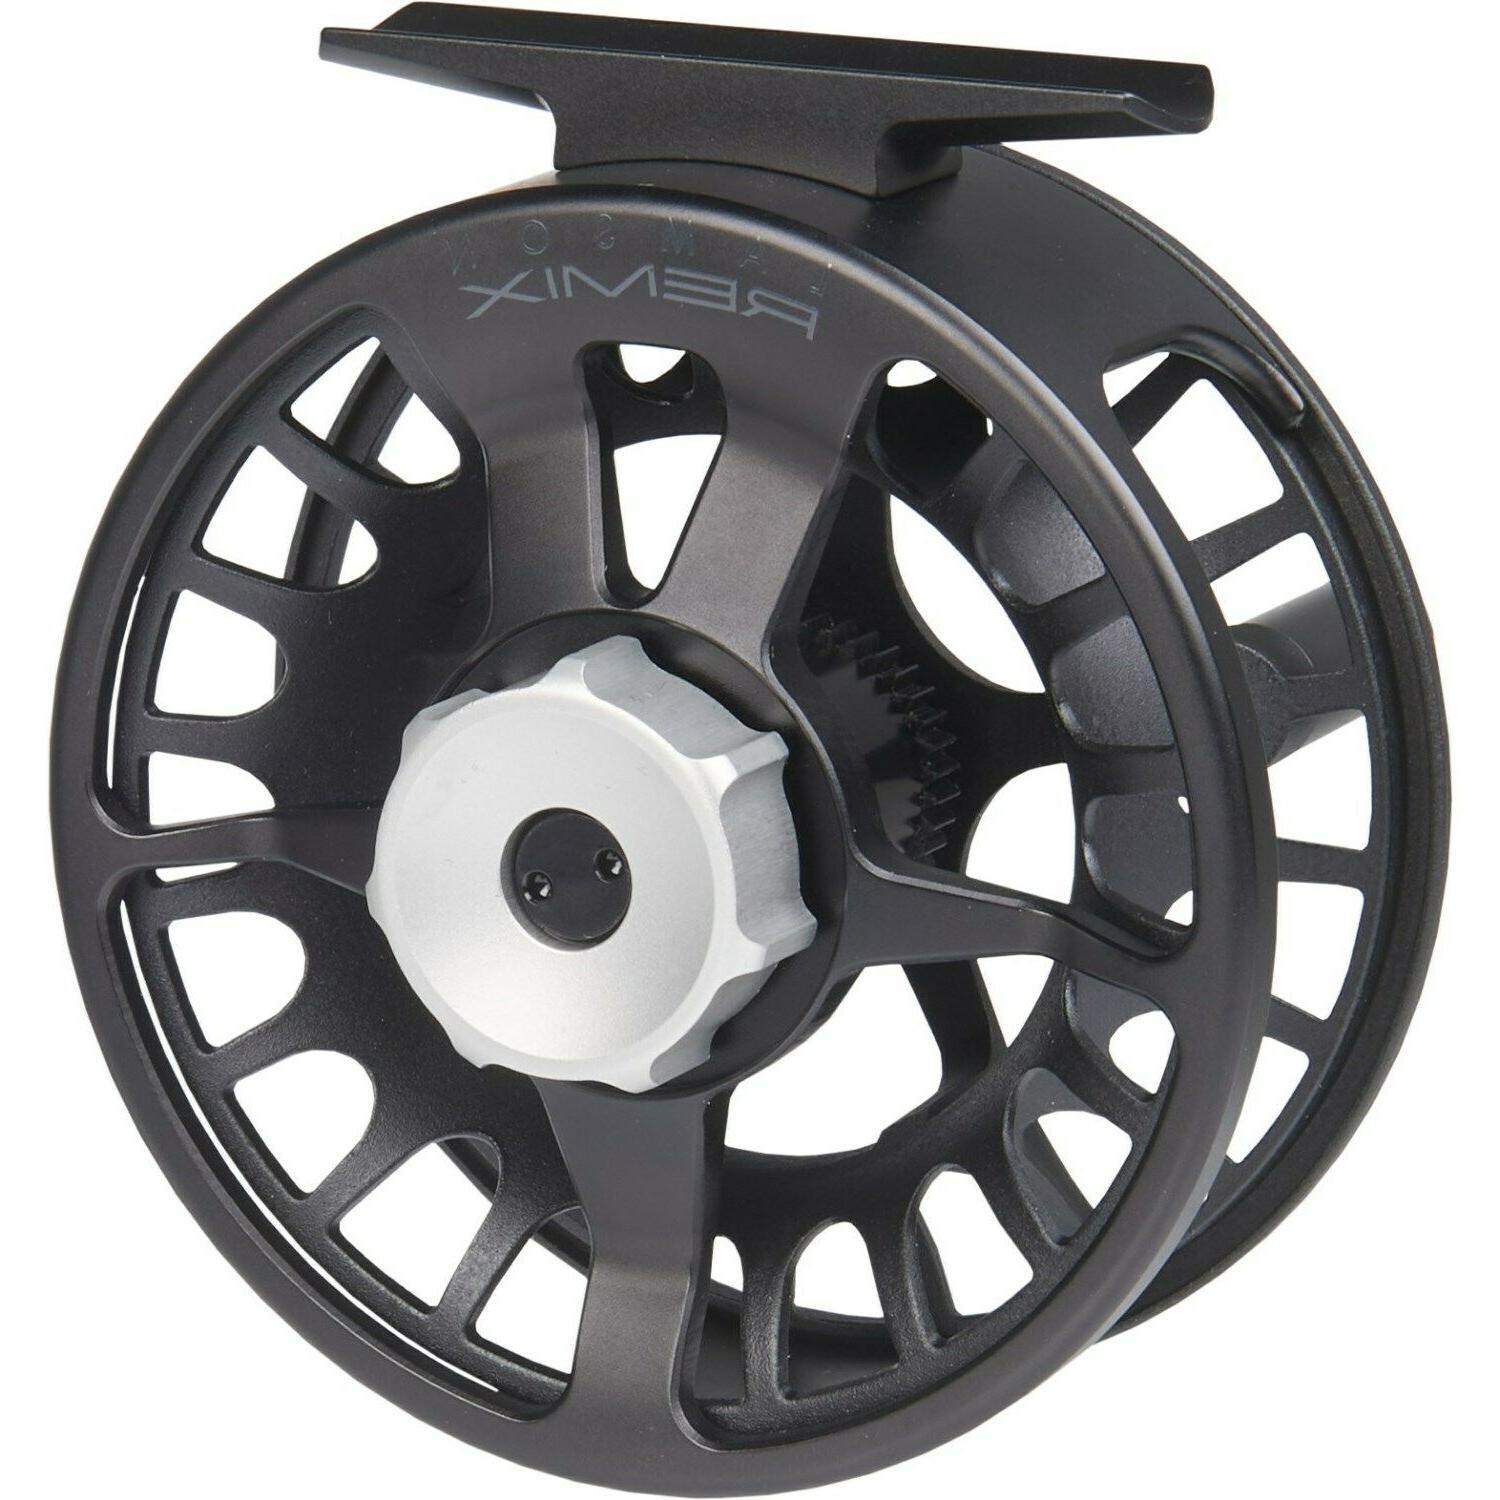 Lamson Remix 1.5 Fly Reel NEW BRAND